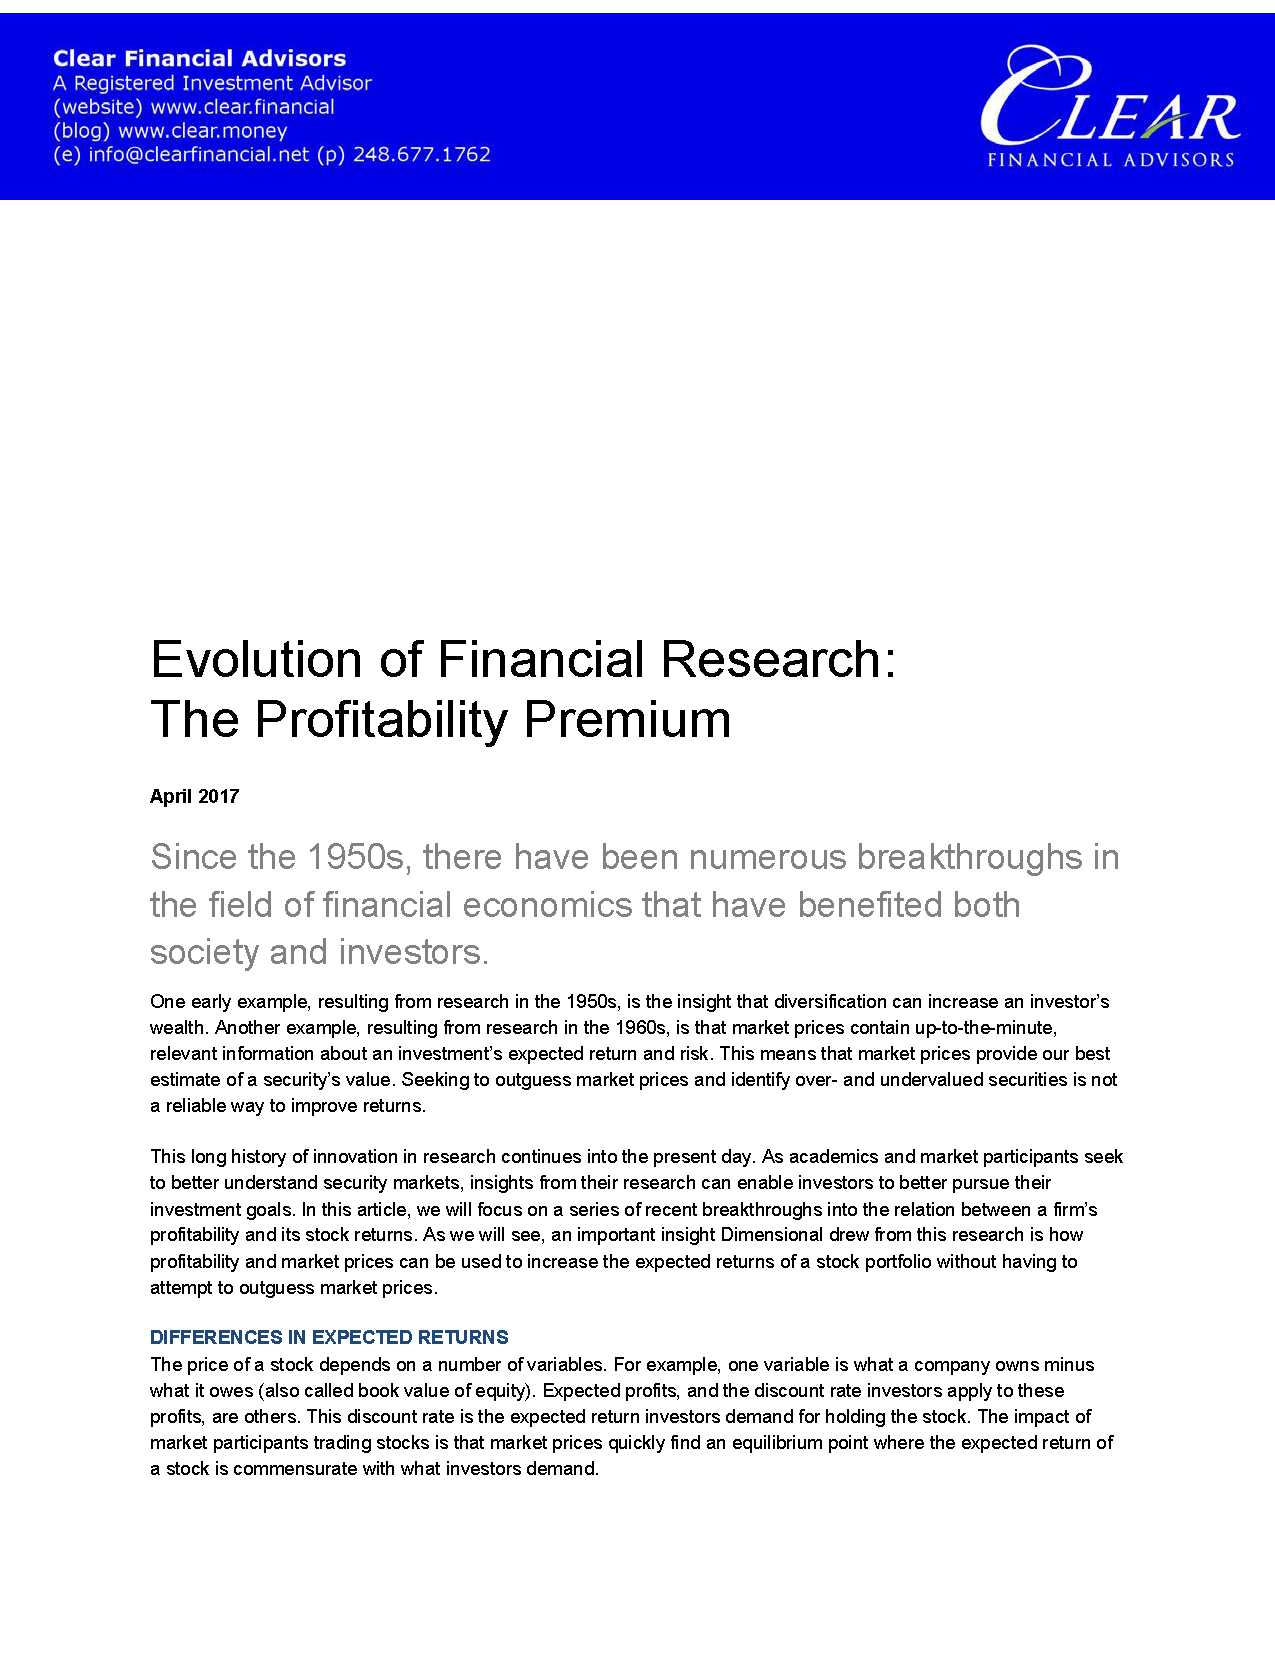 Evolution of Financial Research The Profitability Premium_Page_1